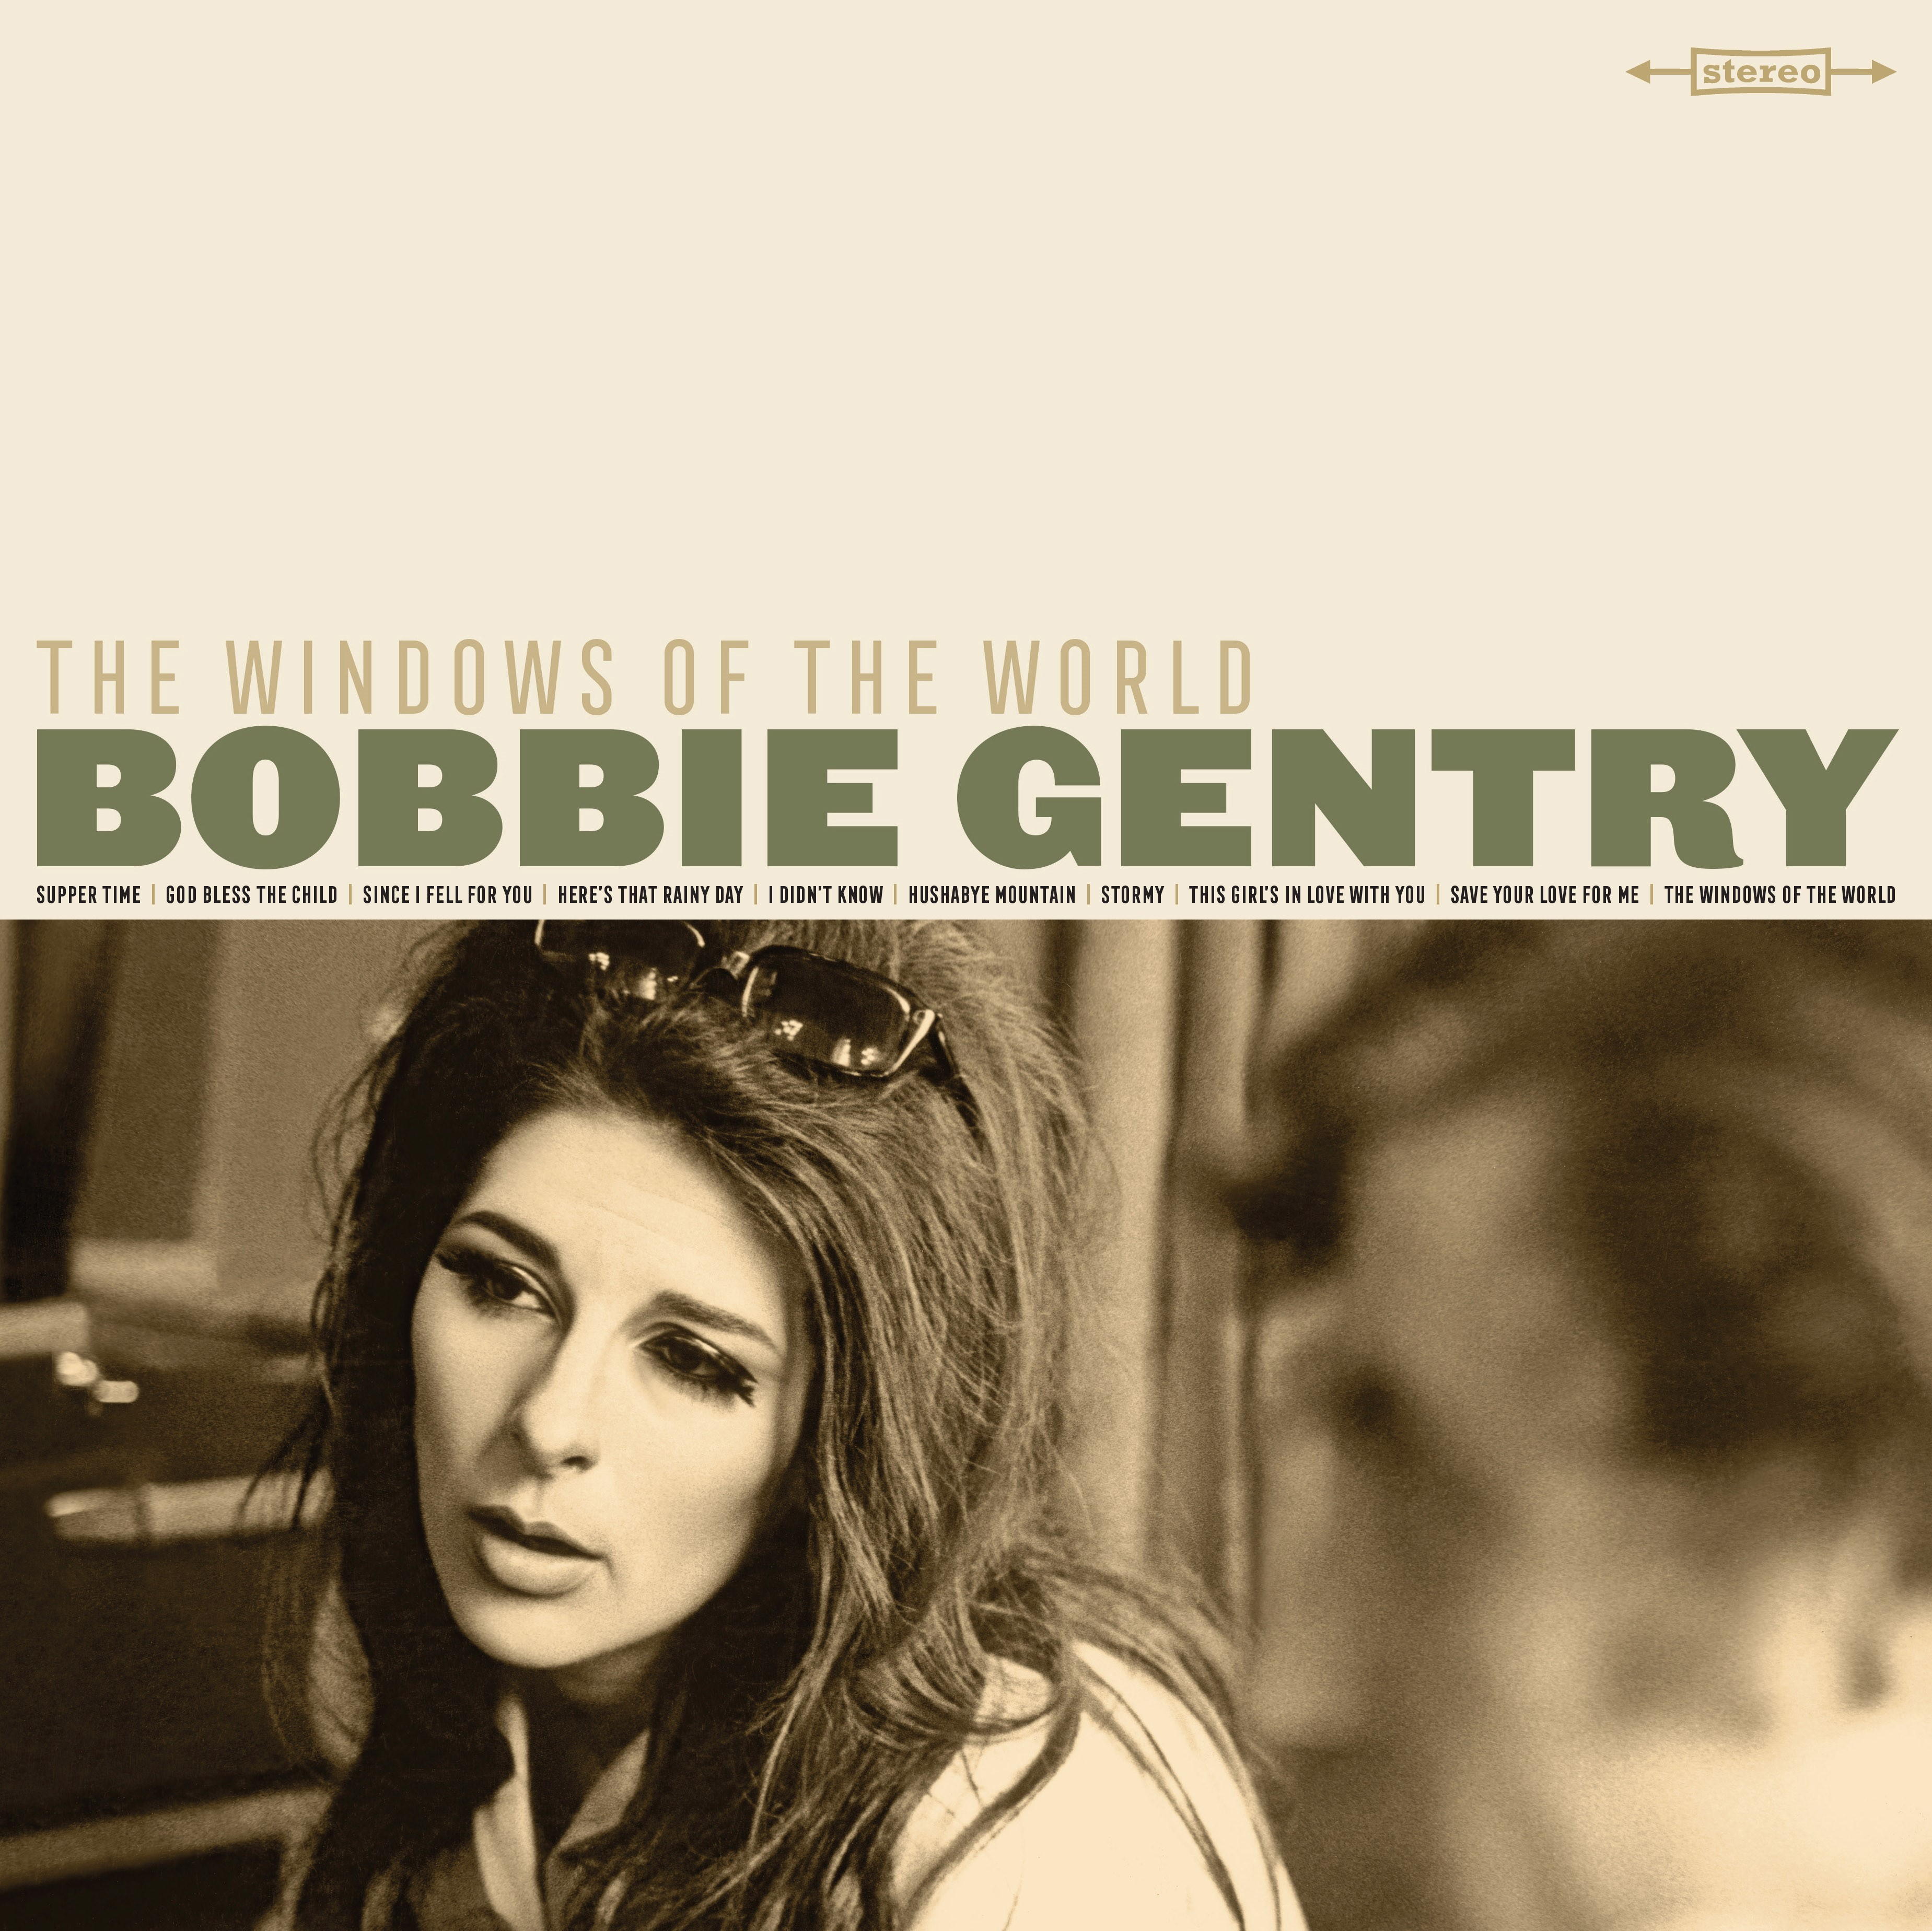 Bobbie Gentry - The Windows of the World [RSD Drops 2021]